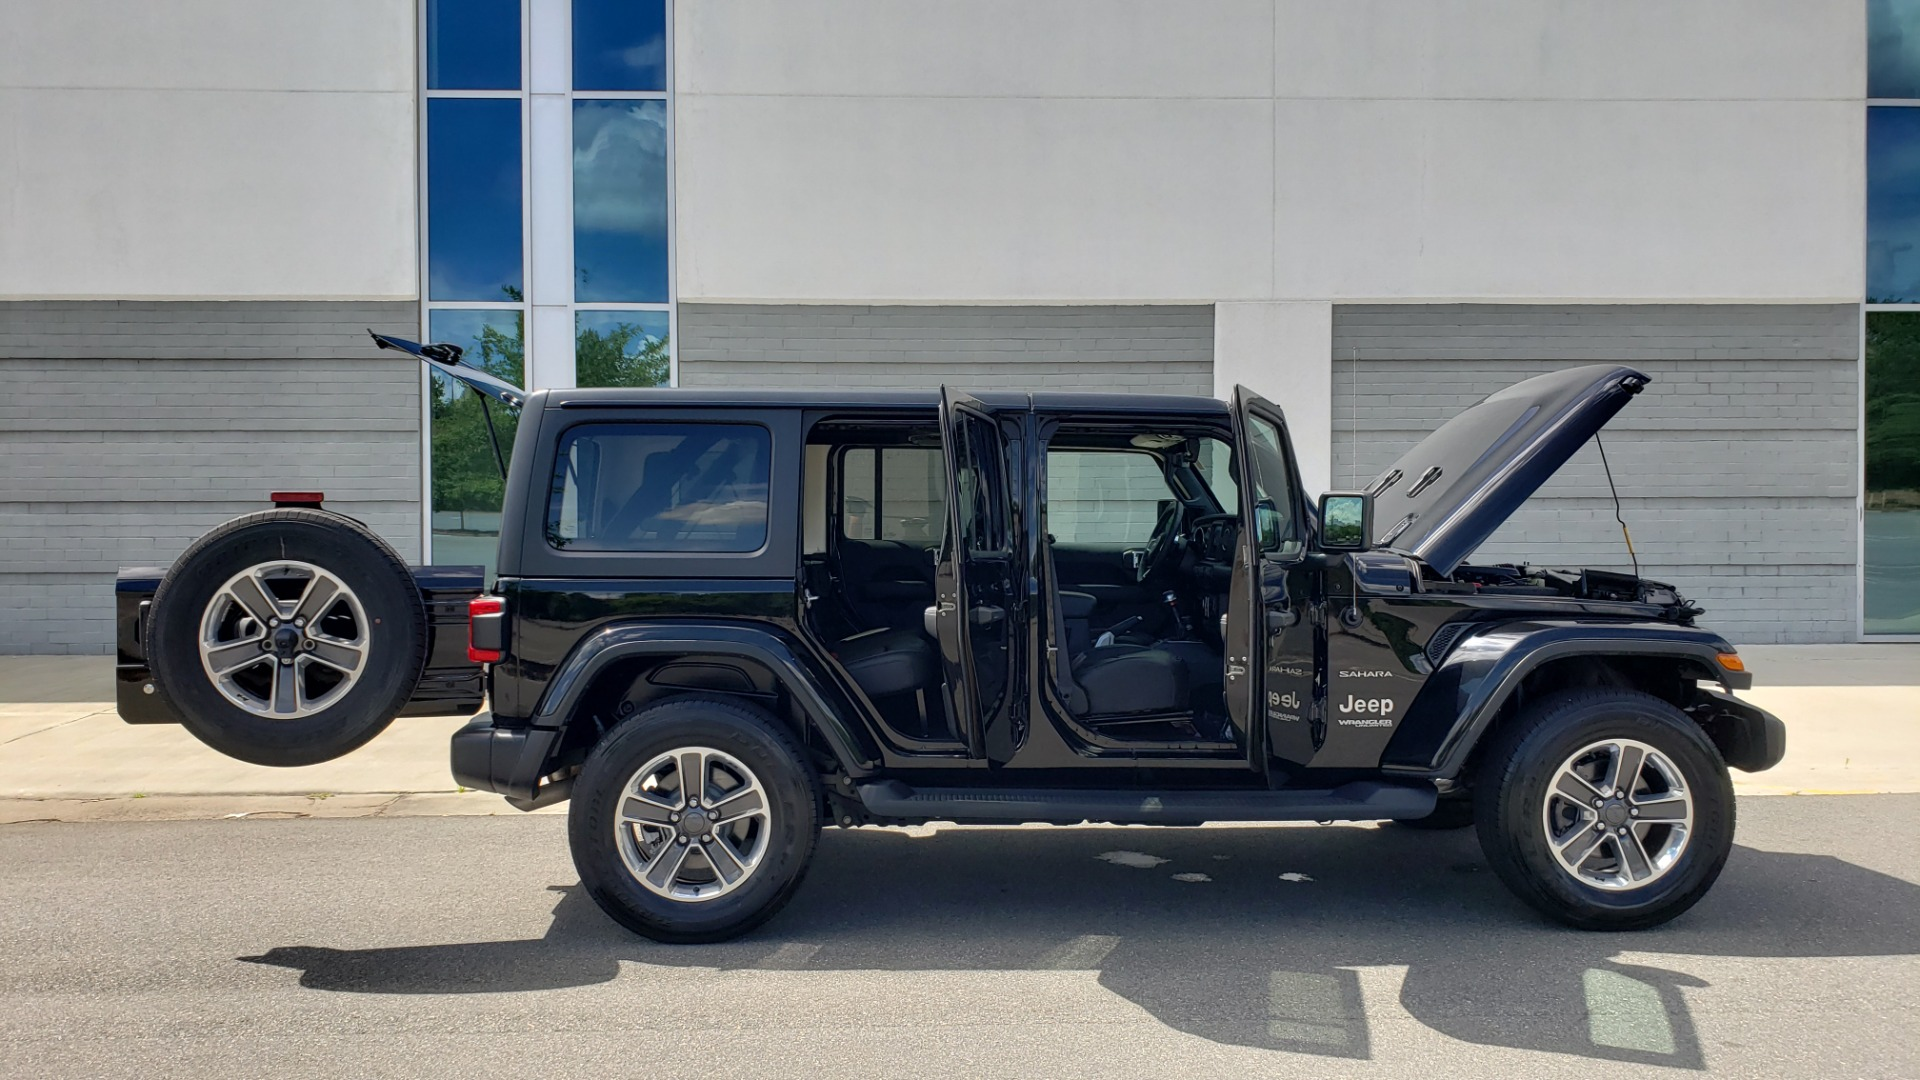 Used 2018 Jeep WRANGLER UNLIMITED SAHARA / 3.6L V6 / 6-SPD MAN / ALPINE / NAV / HTD STS / REARVIEW for sale $43,999 at Formula Imports in Charlotte NC 28227 13